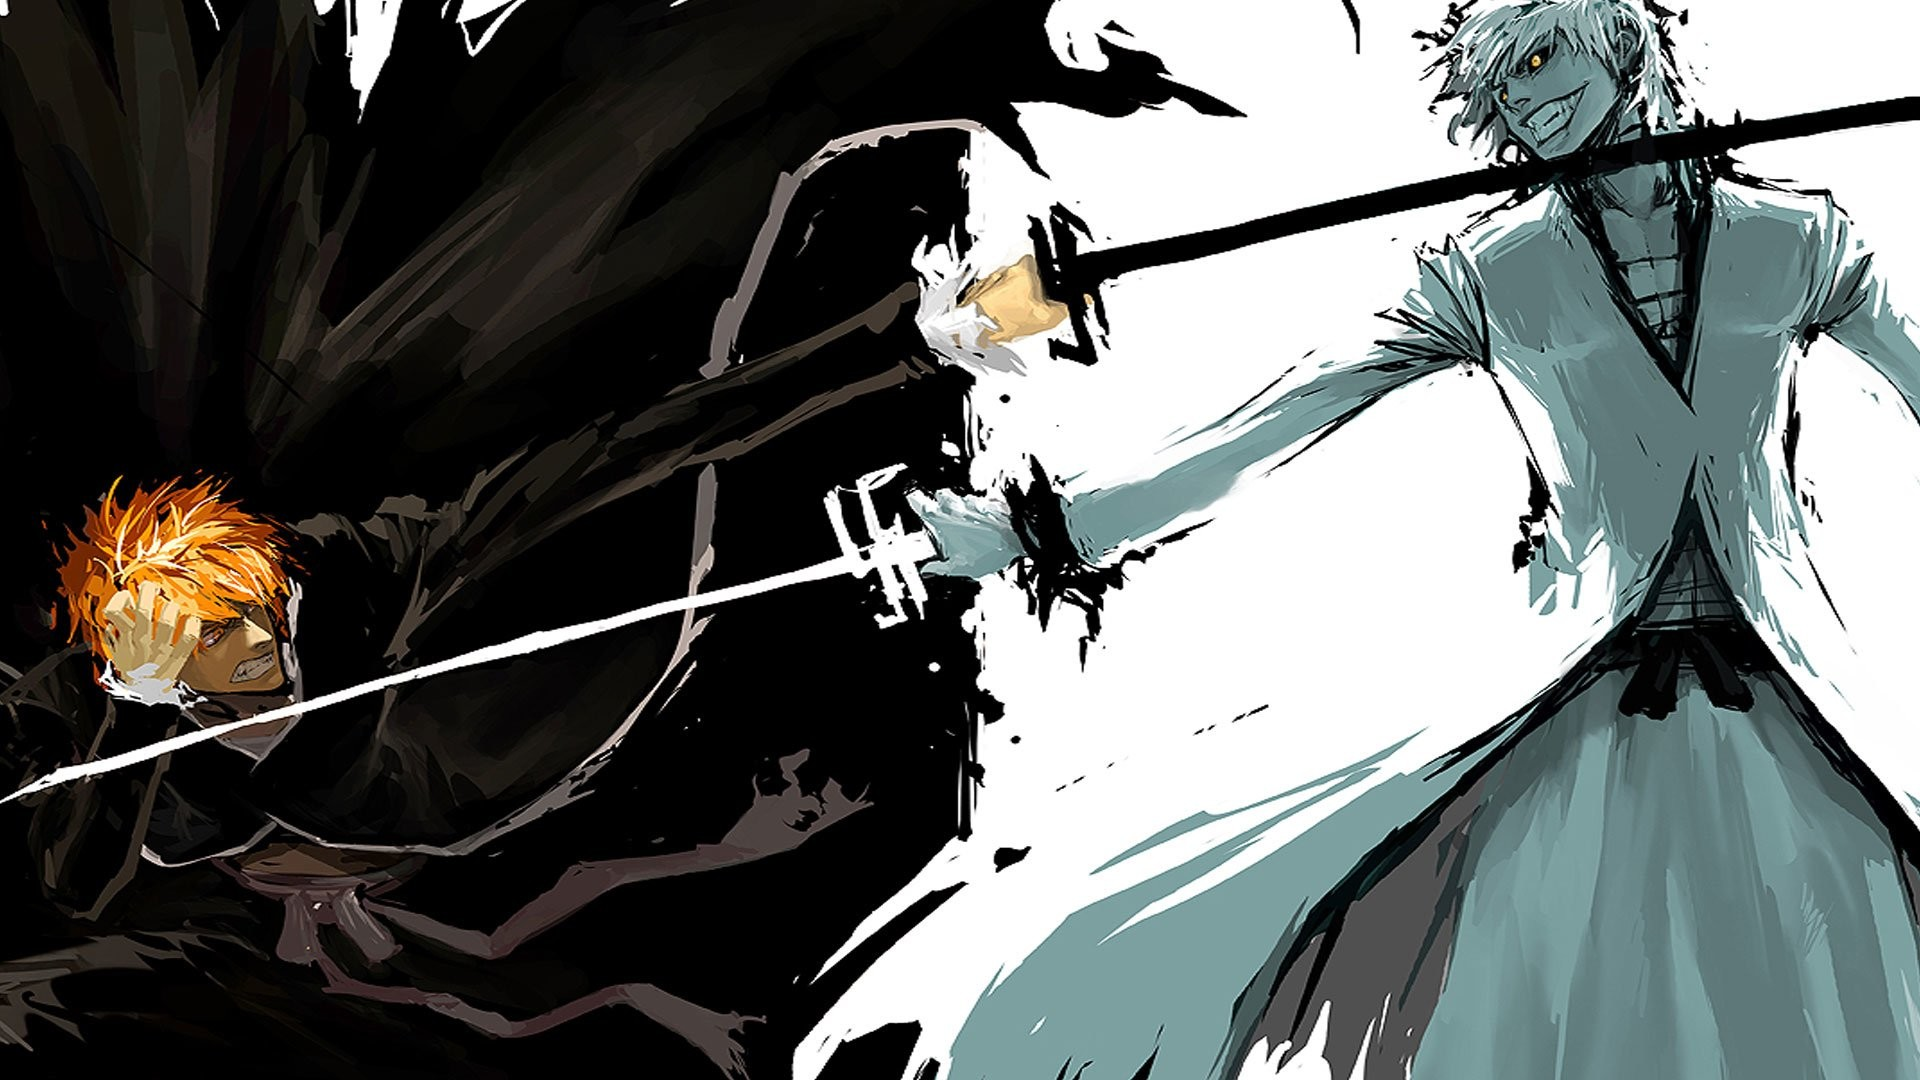 1920x1080 HD Wallpaper | Background ID:2499.  Anime Bleach